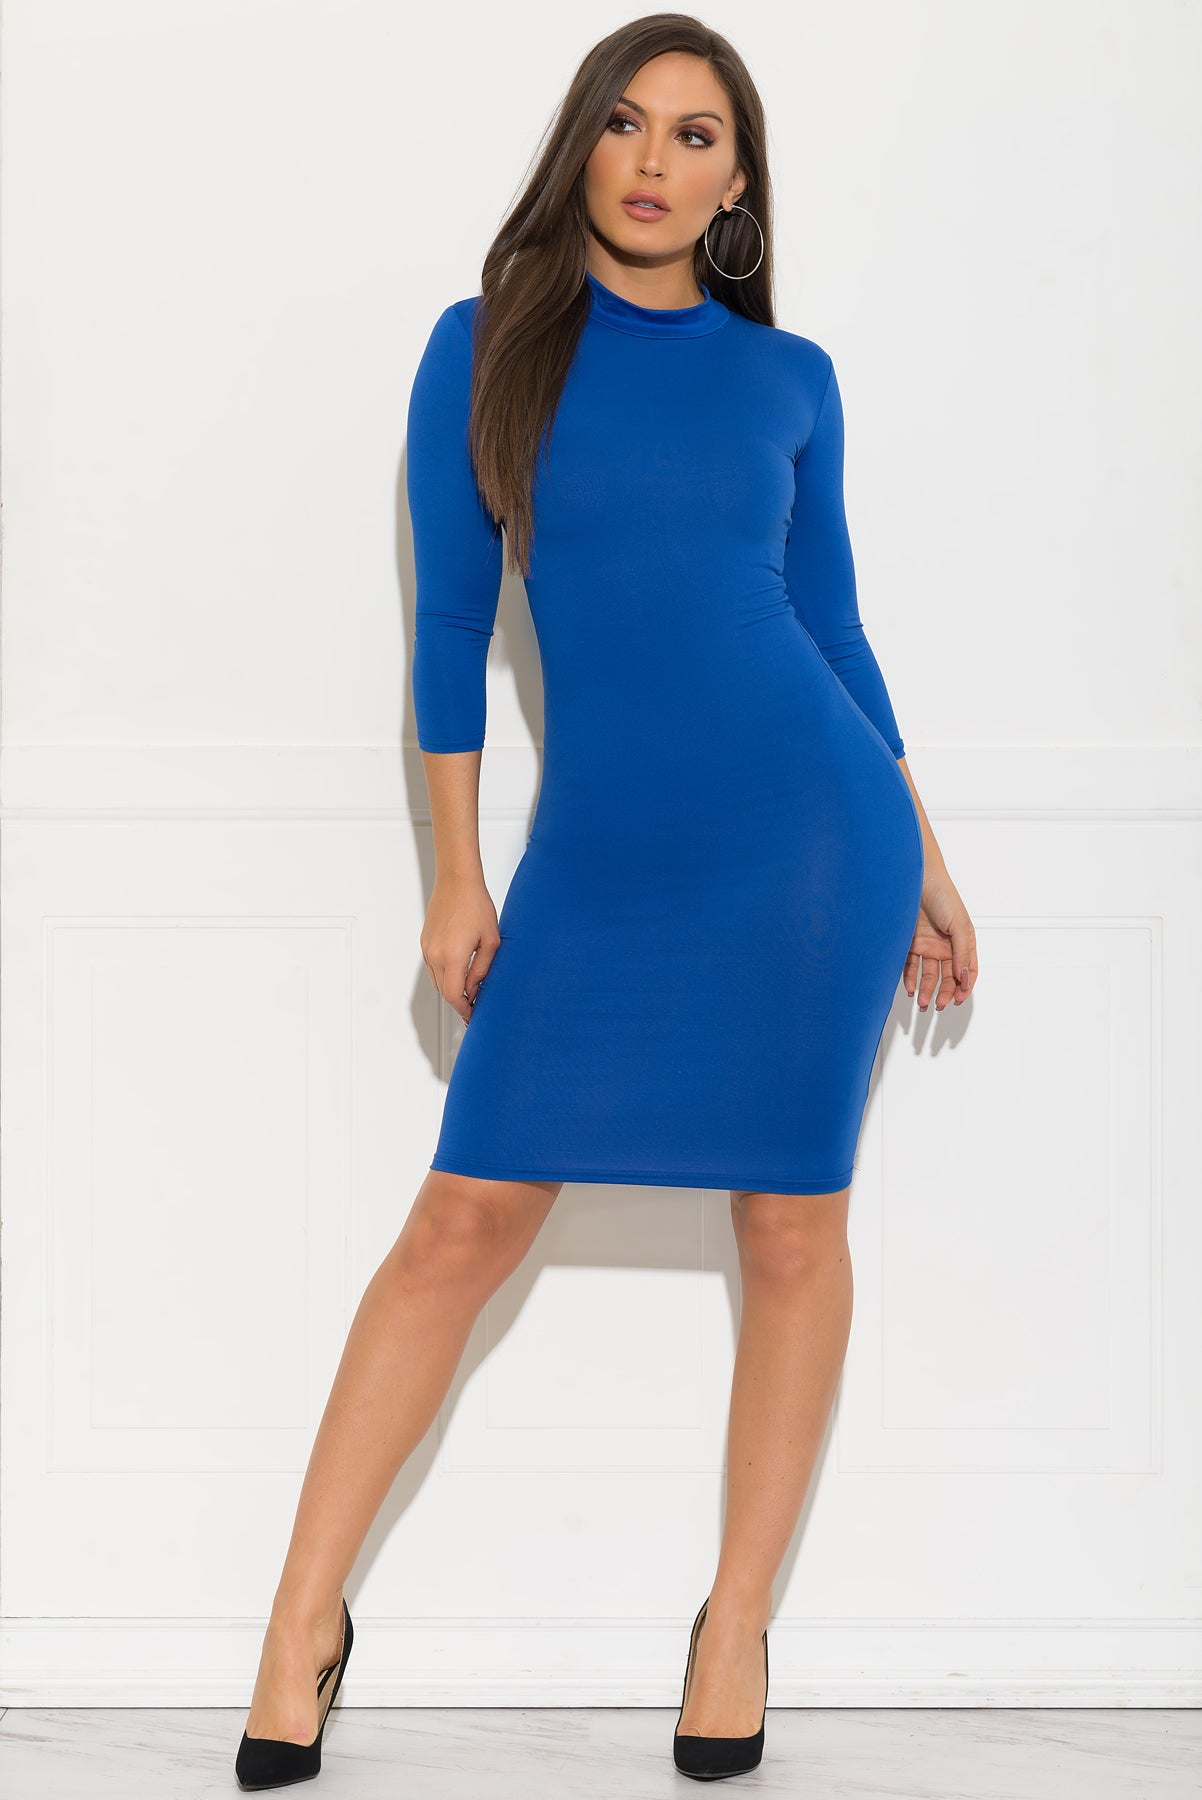 Gia Dress - Royal Blue